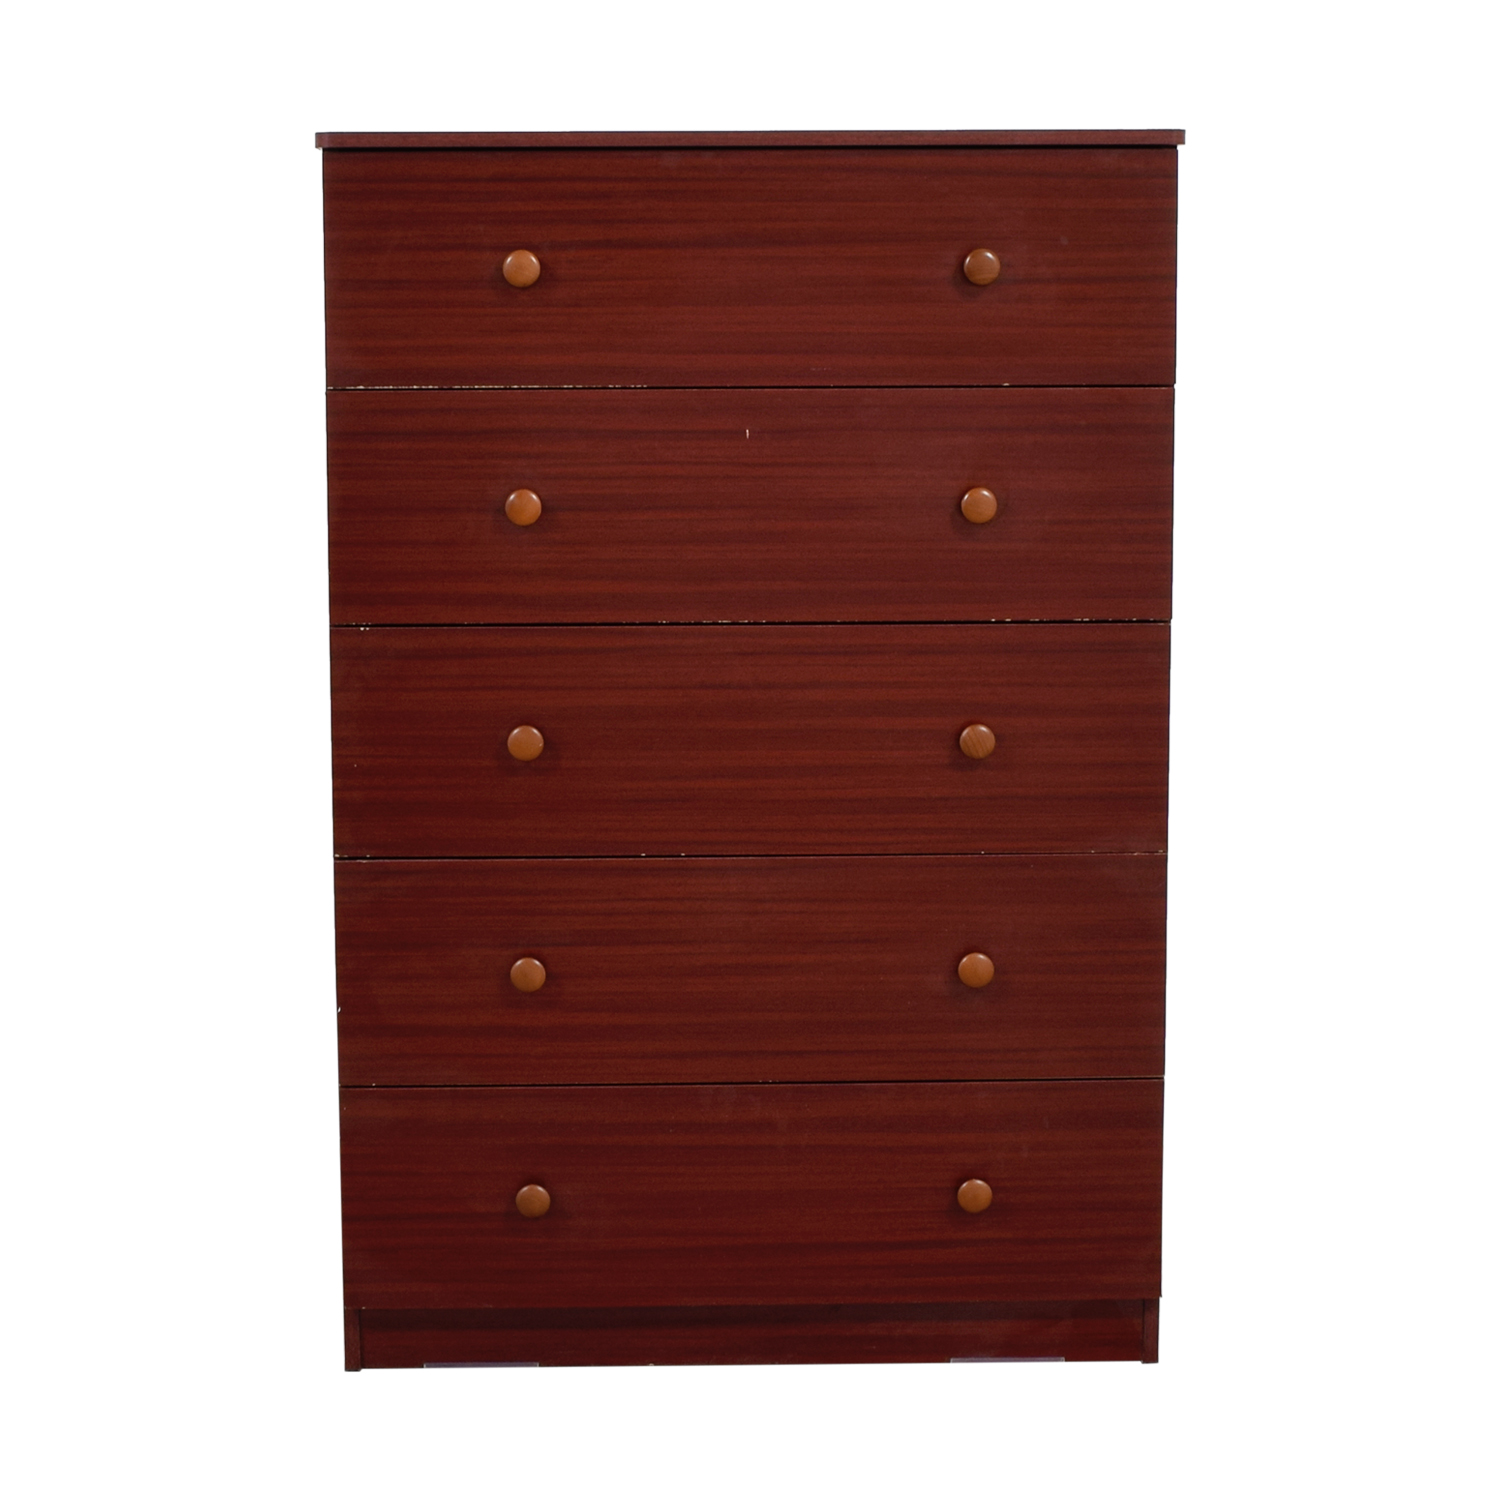 Lovely Gothic Cabinet Craft Gothic Cabinet Craft Cherrywood Five Drawer Dresser On  Sale ...